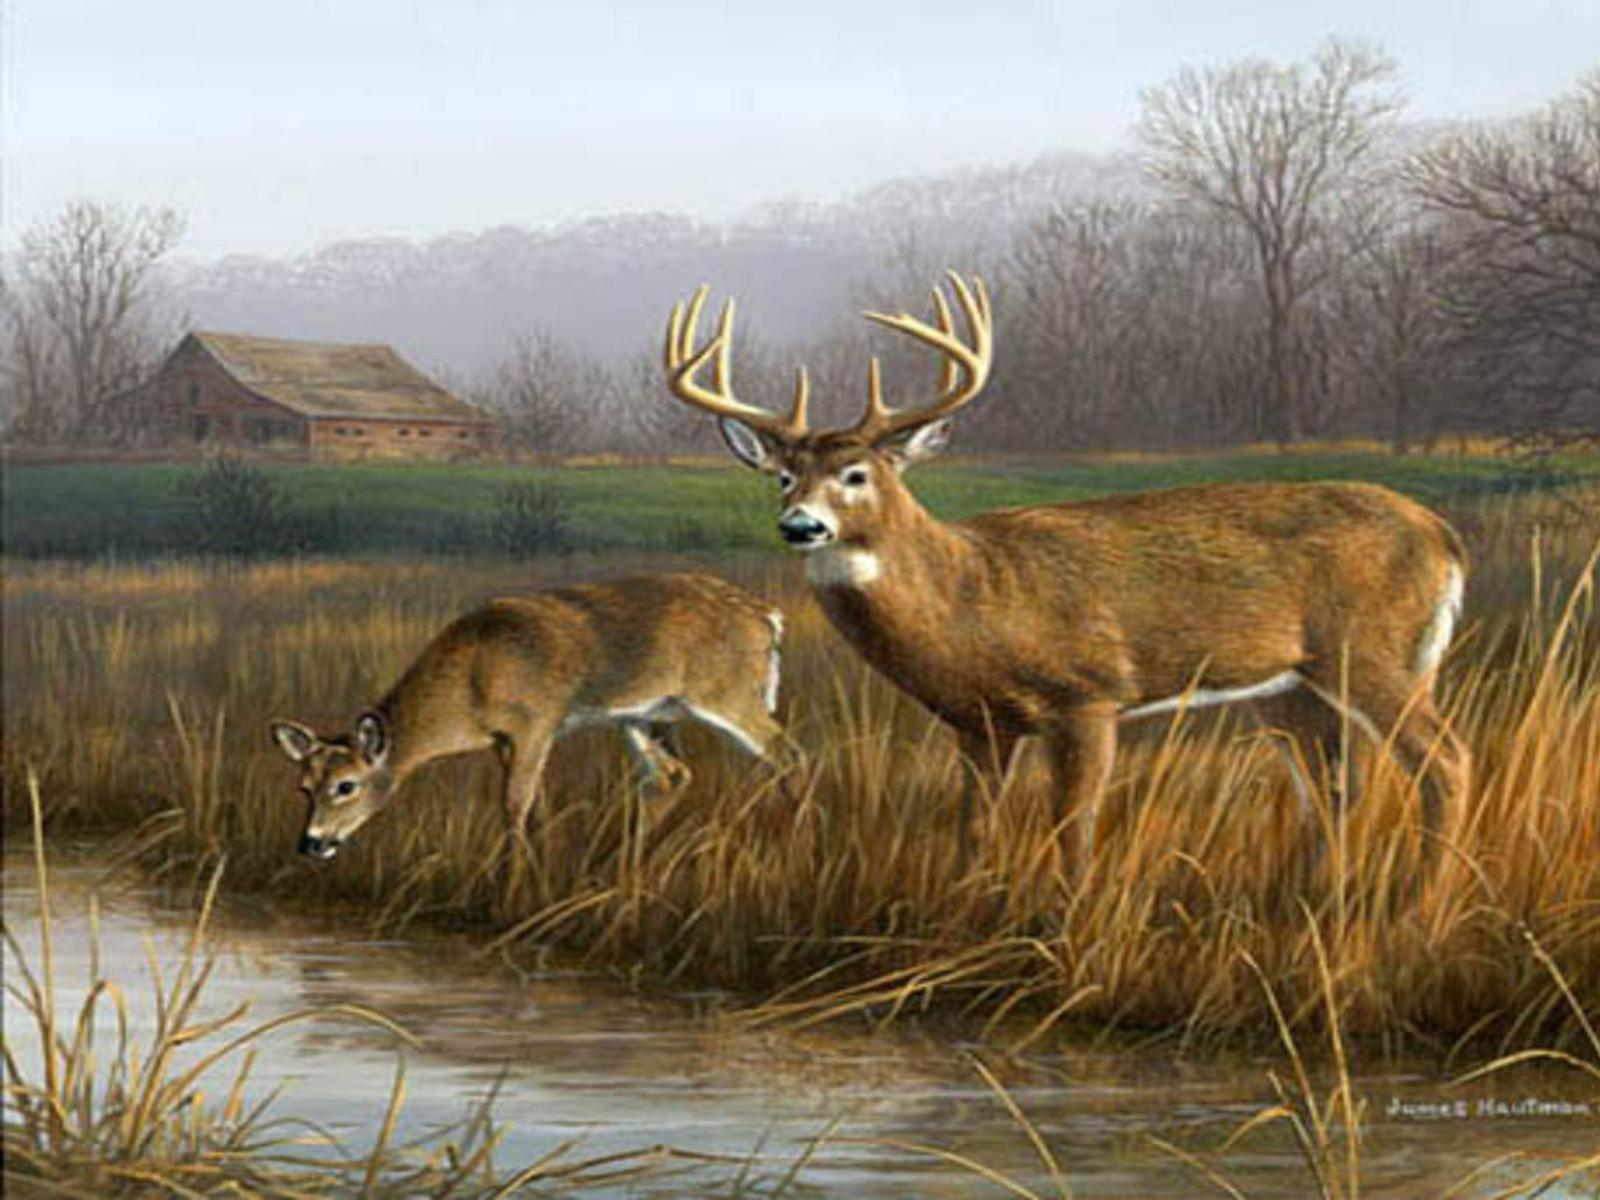 deer hunting games desktop wallpaper download deer hunting games 1600x1200